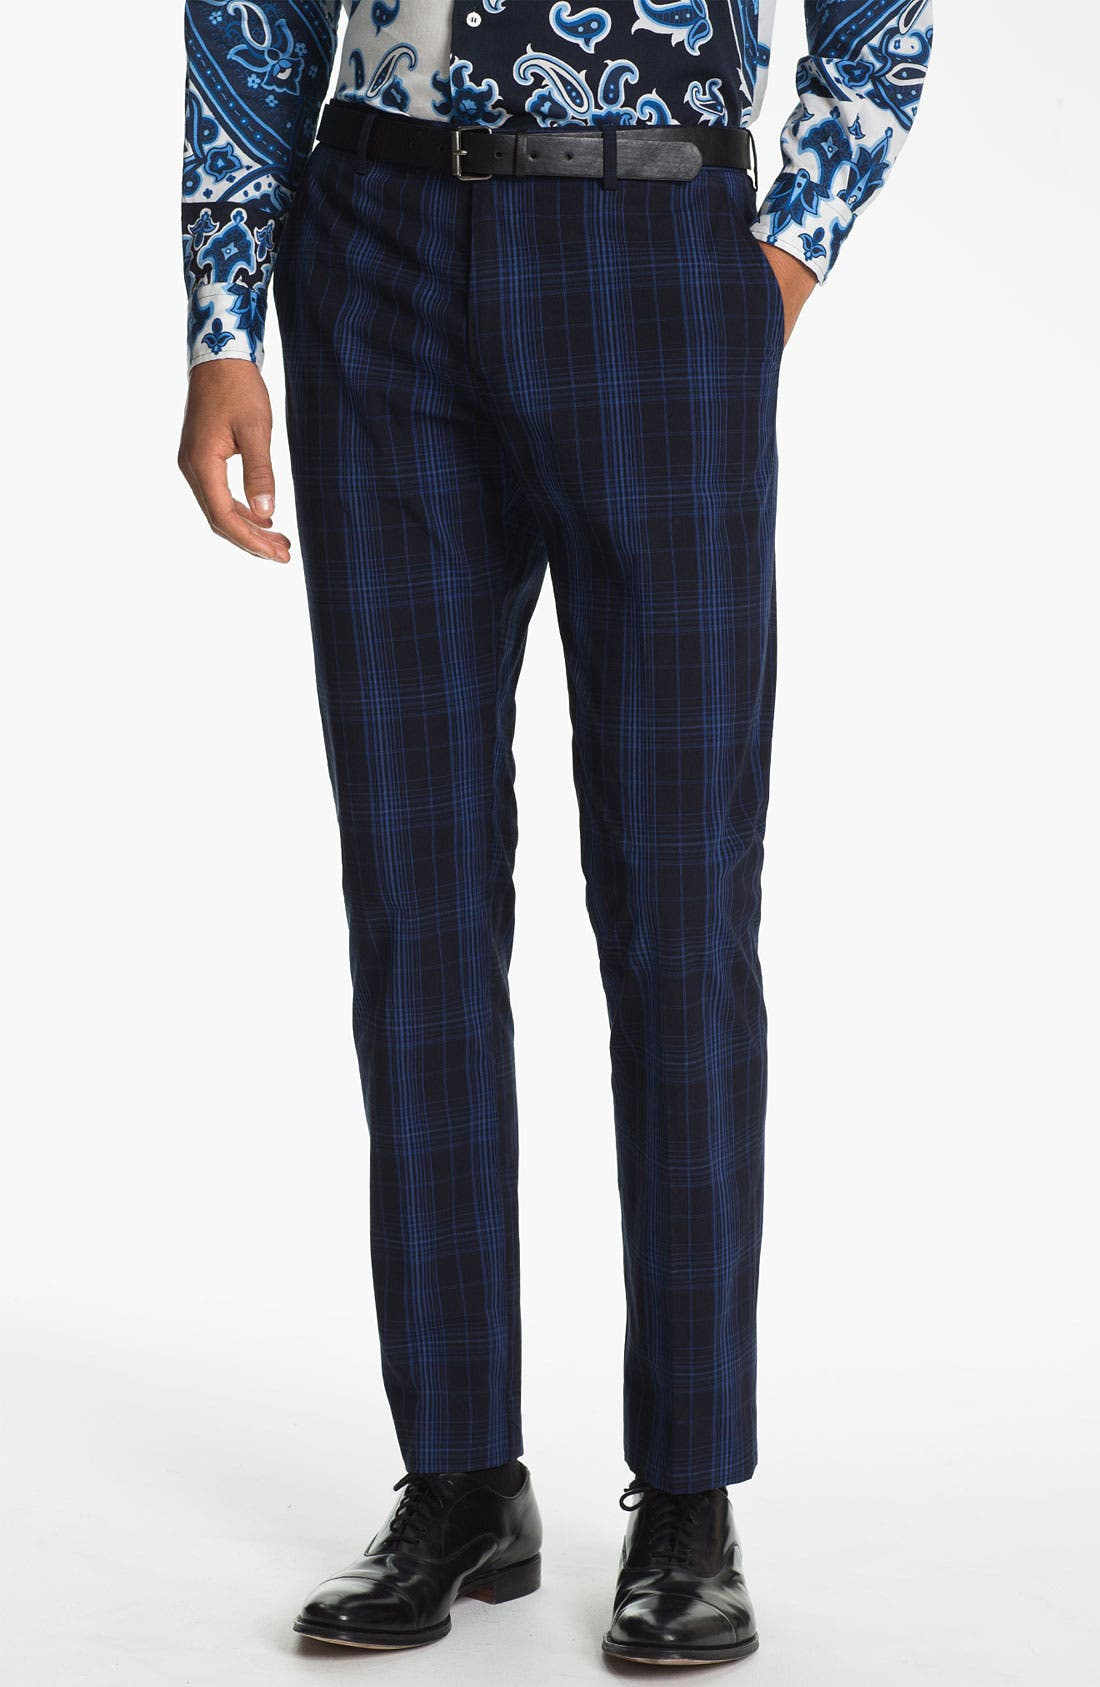 Main Image - Etro 'Mexico' Slim Fit Plaid Trousers